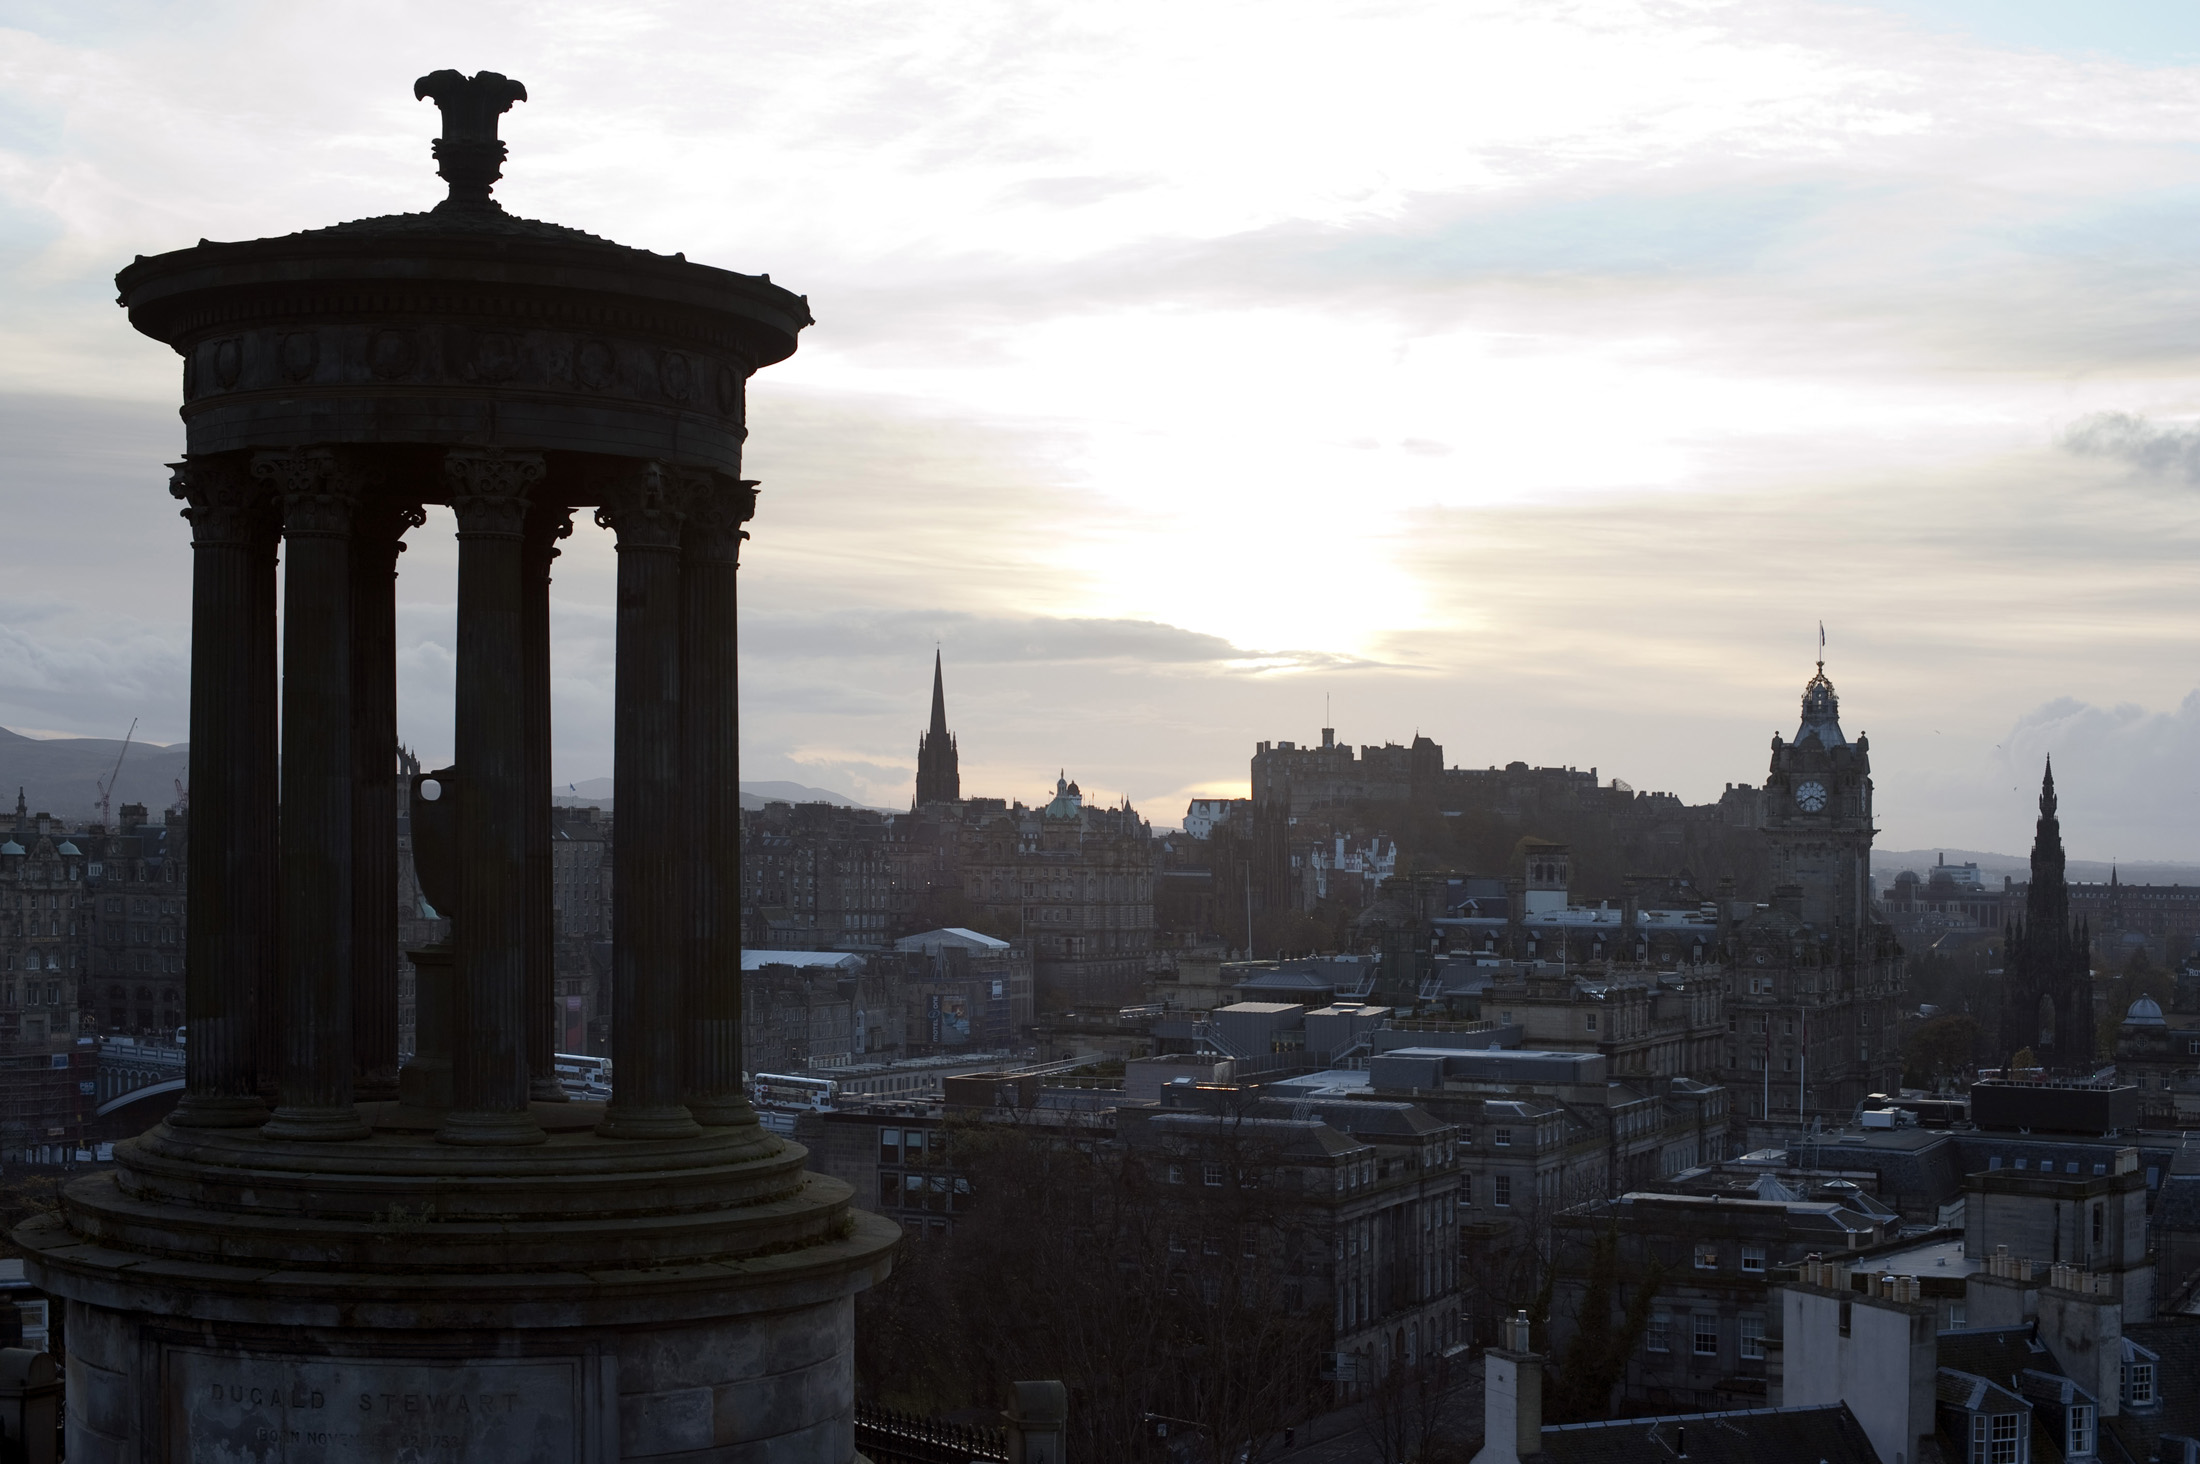 Dugald Stewart Monument and the skyline of old smokey